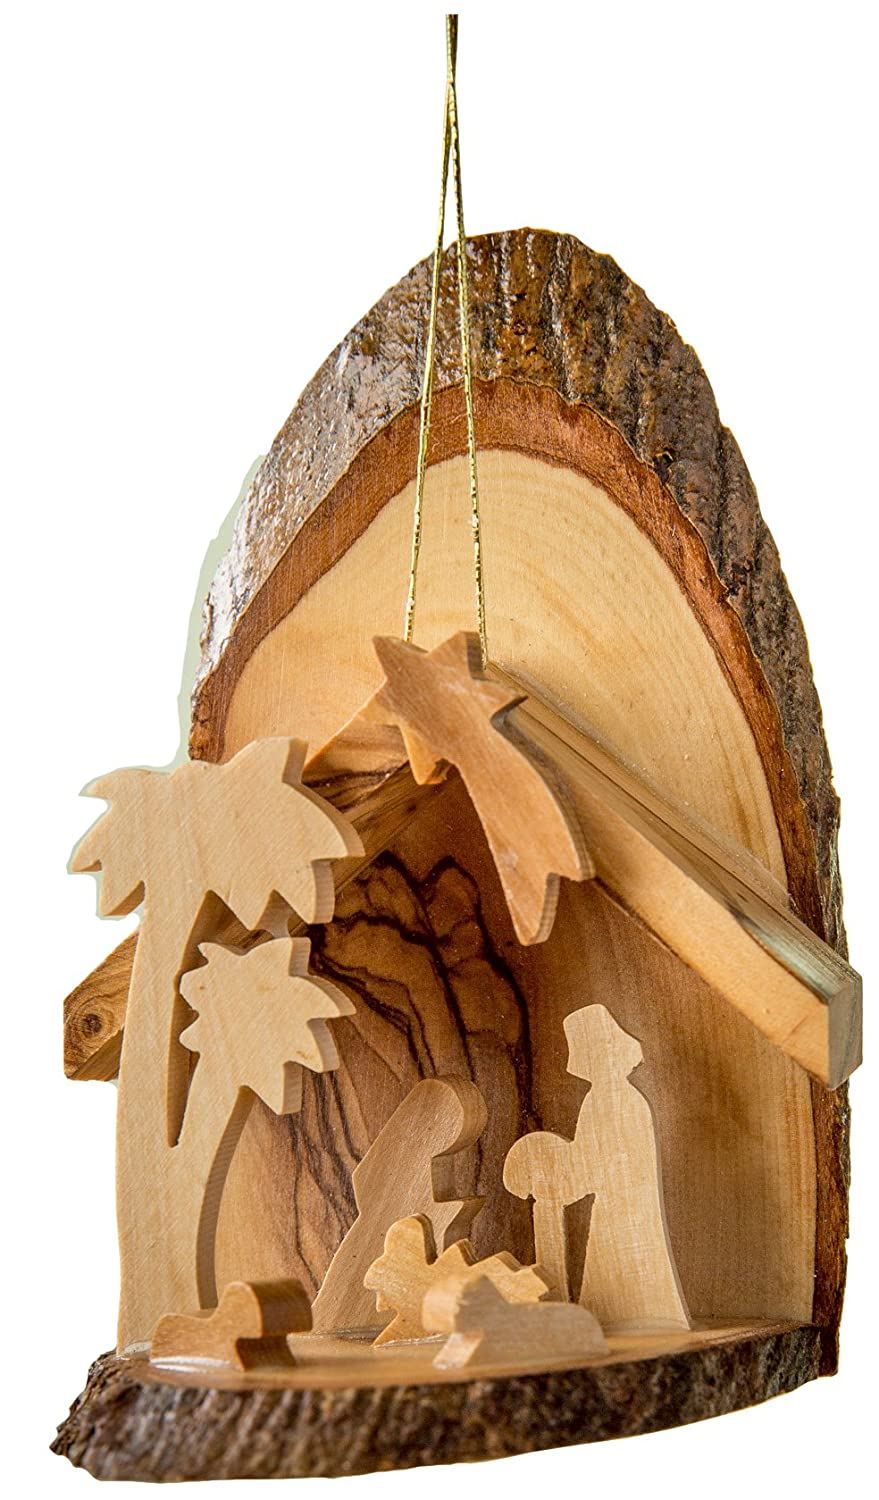 Buy Earthwood Olive Wood Bark Slice Grotto With 2 Palms Ornament Online At Low Prices In India Amazon In